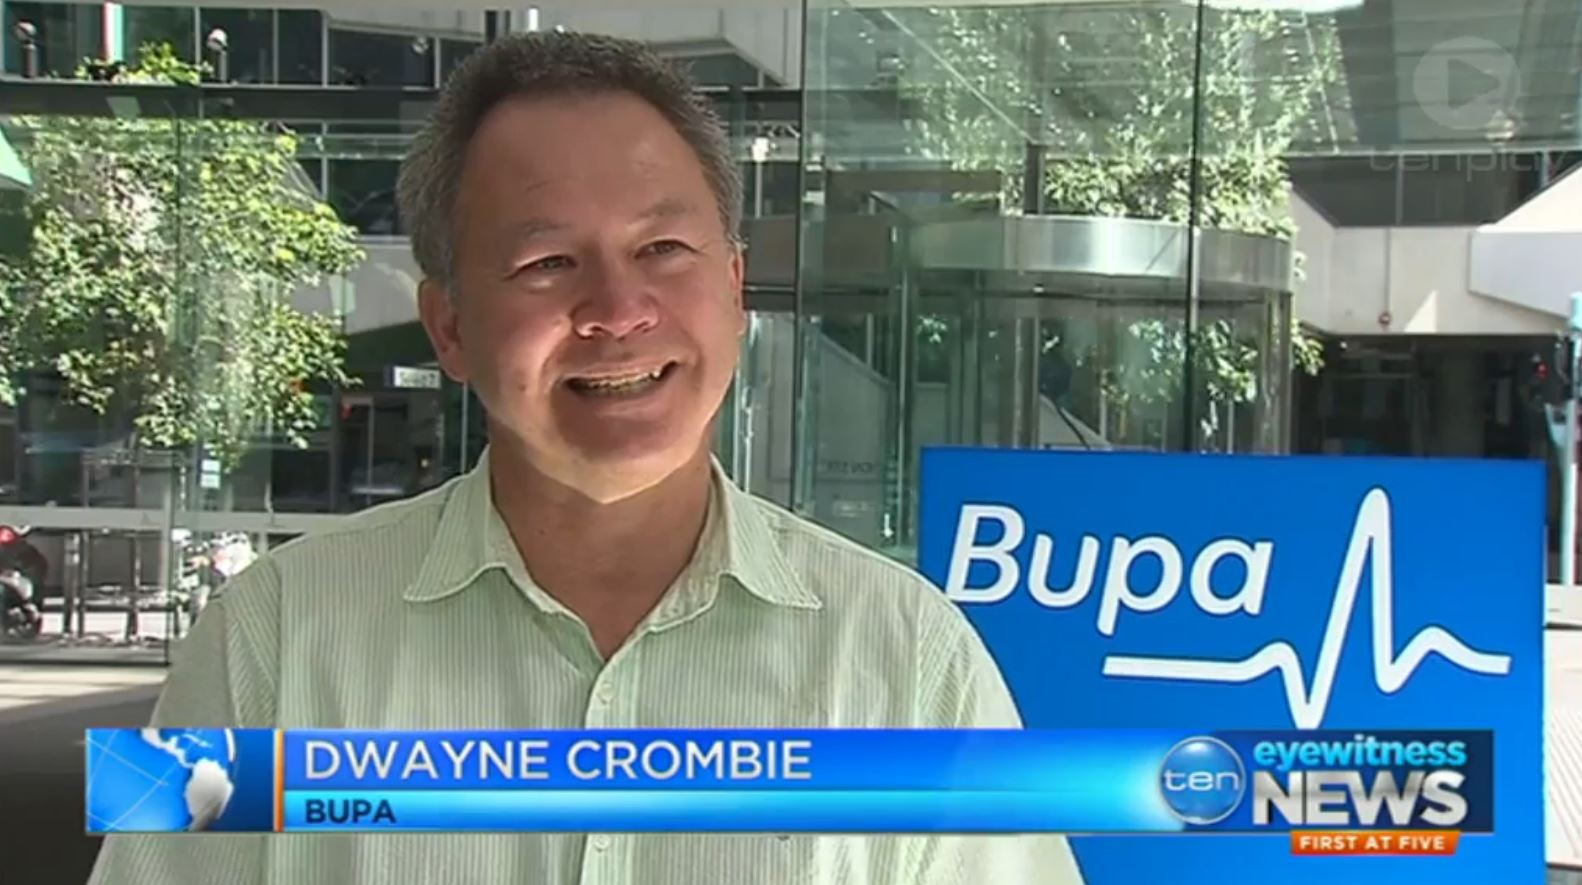 Dwayne Crombie on Ten News